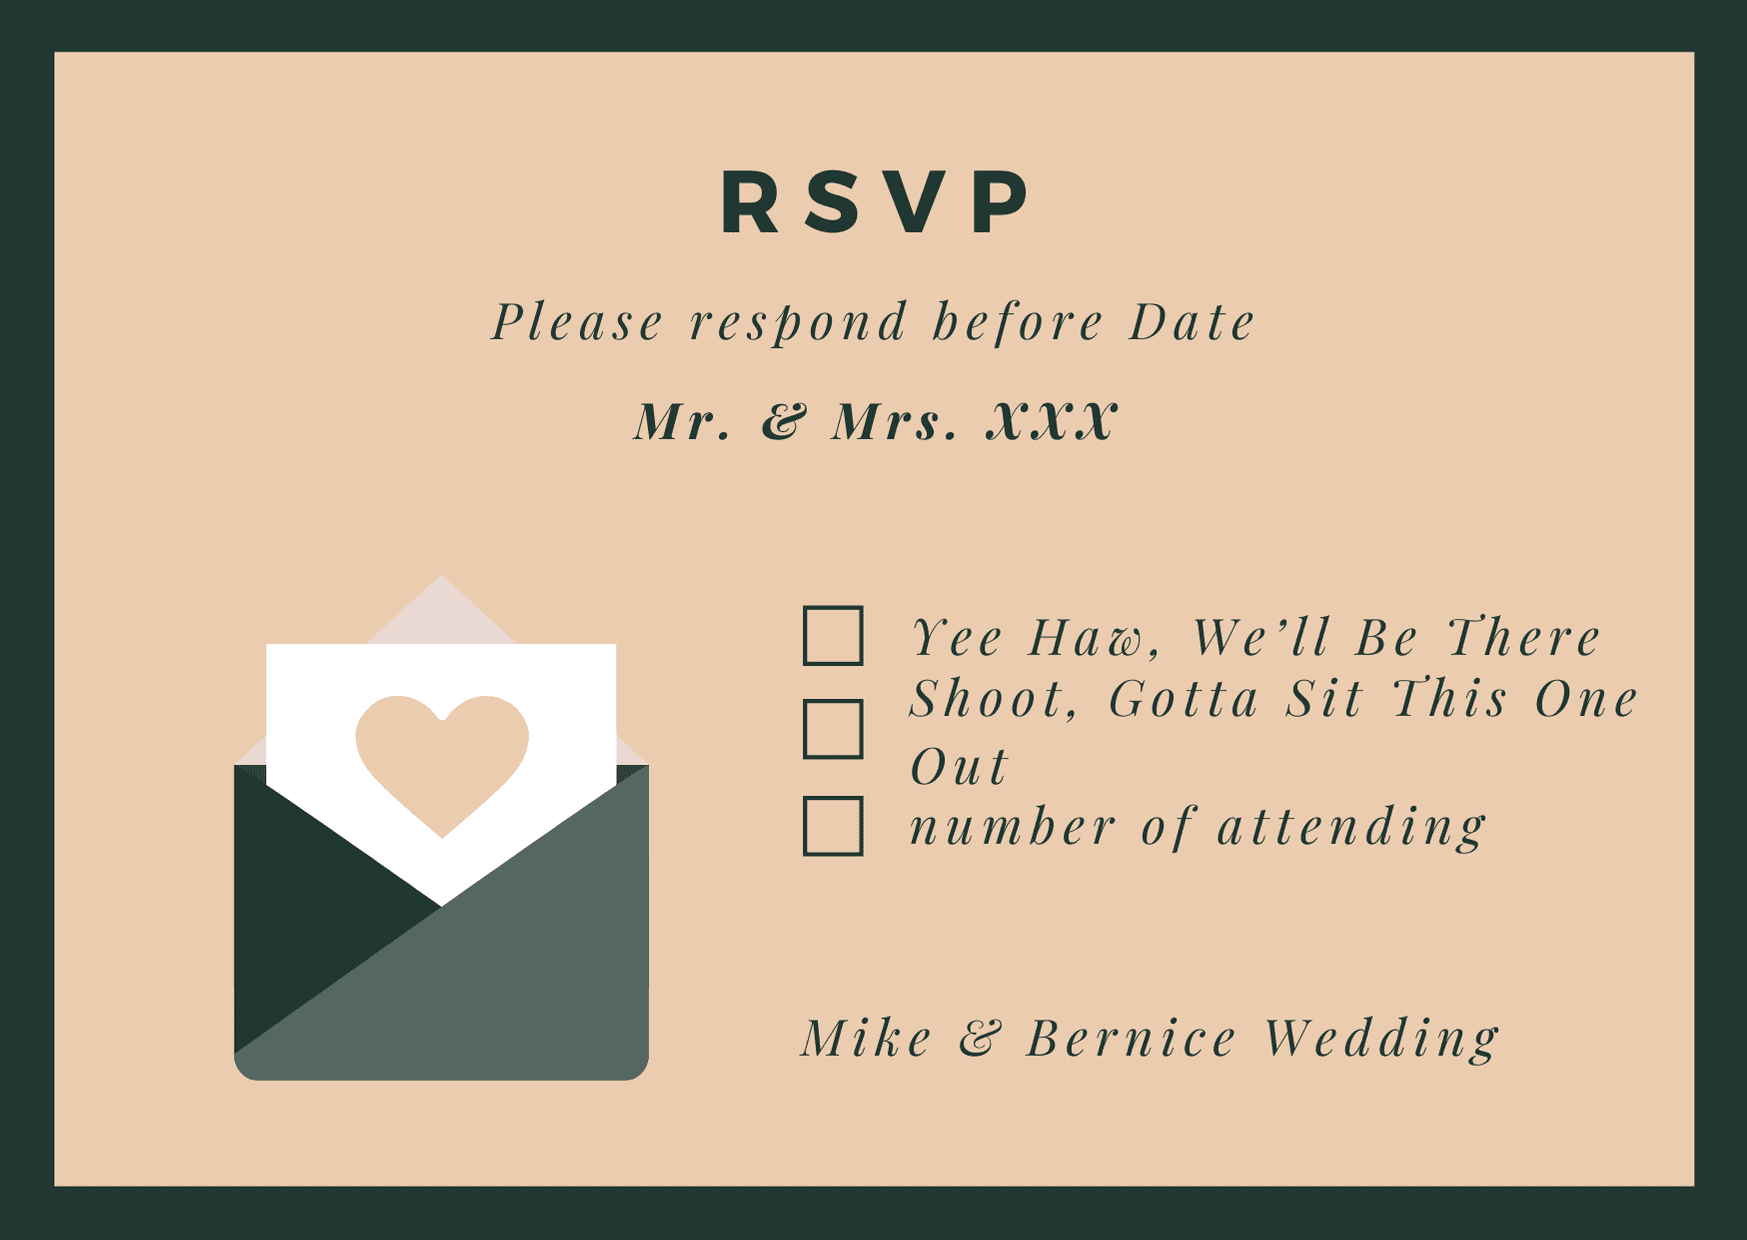 rsvp card for wedding - country style